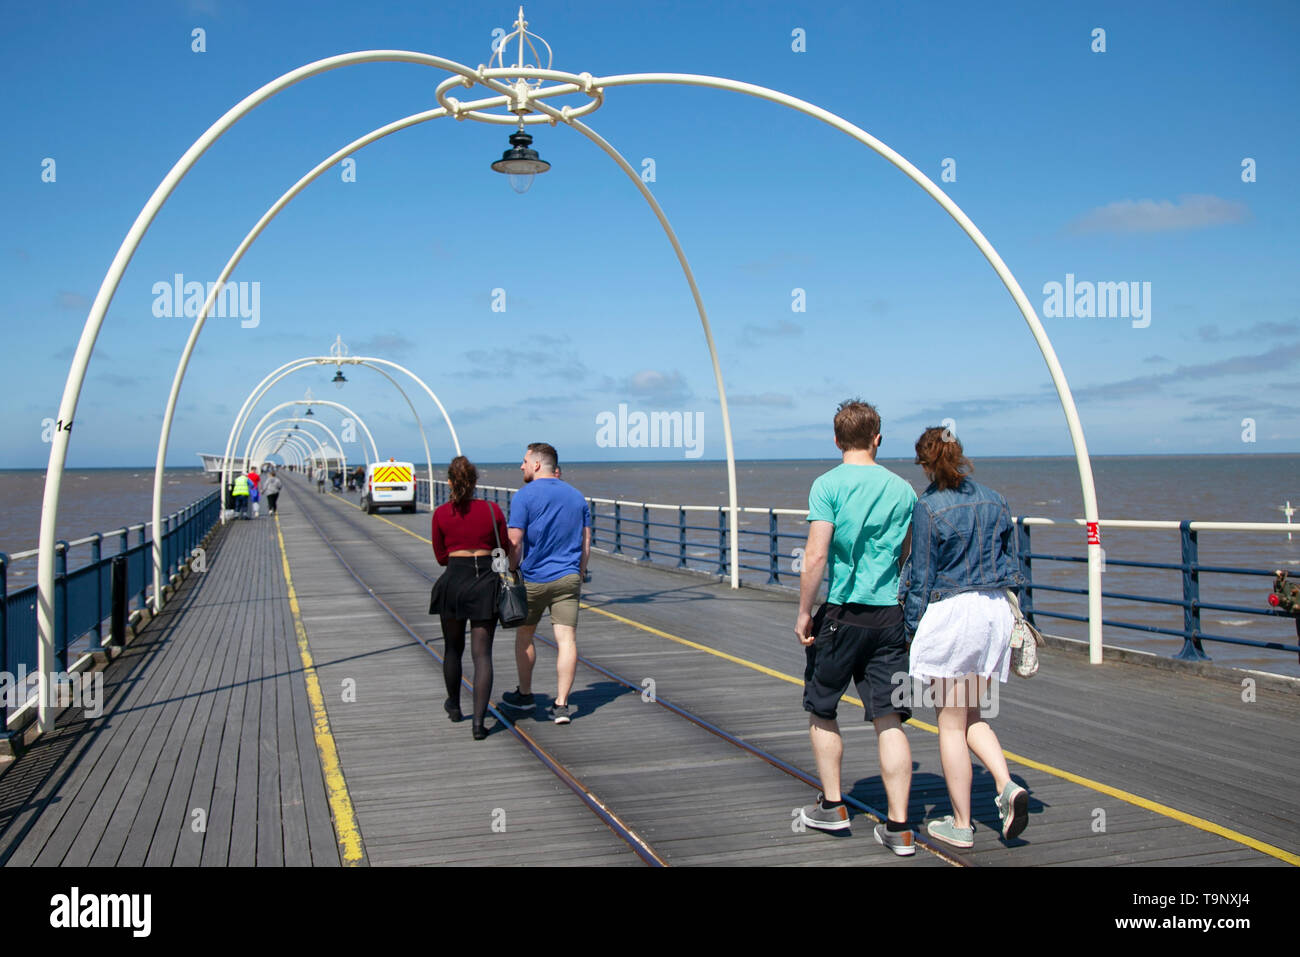 Southport, Merseyside. 20th May 2019. UK Weather. Bright sunny start to the day as local residents take a stroll on the restored Venetian Pier. Shirt sleeves & shorts are the order of the day as temperatures warm up in the north-west. Credit: MediaWorldImages/Alamy Live News - Stock Image